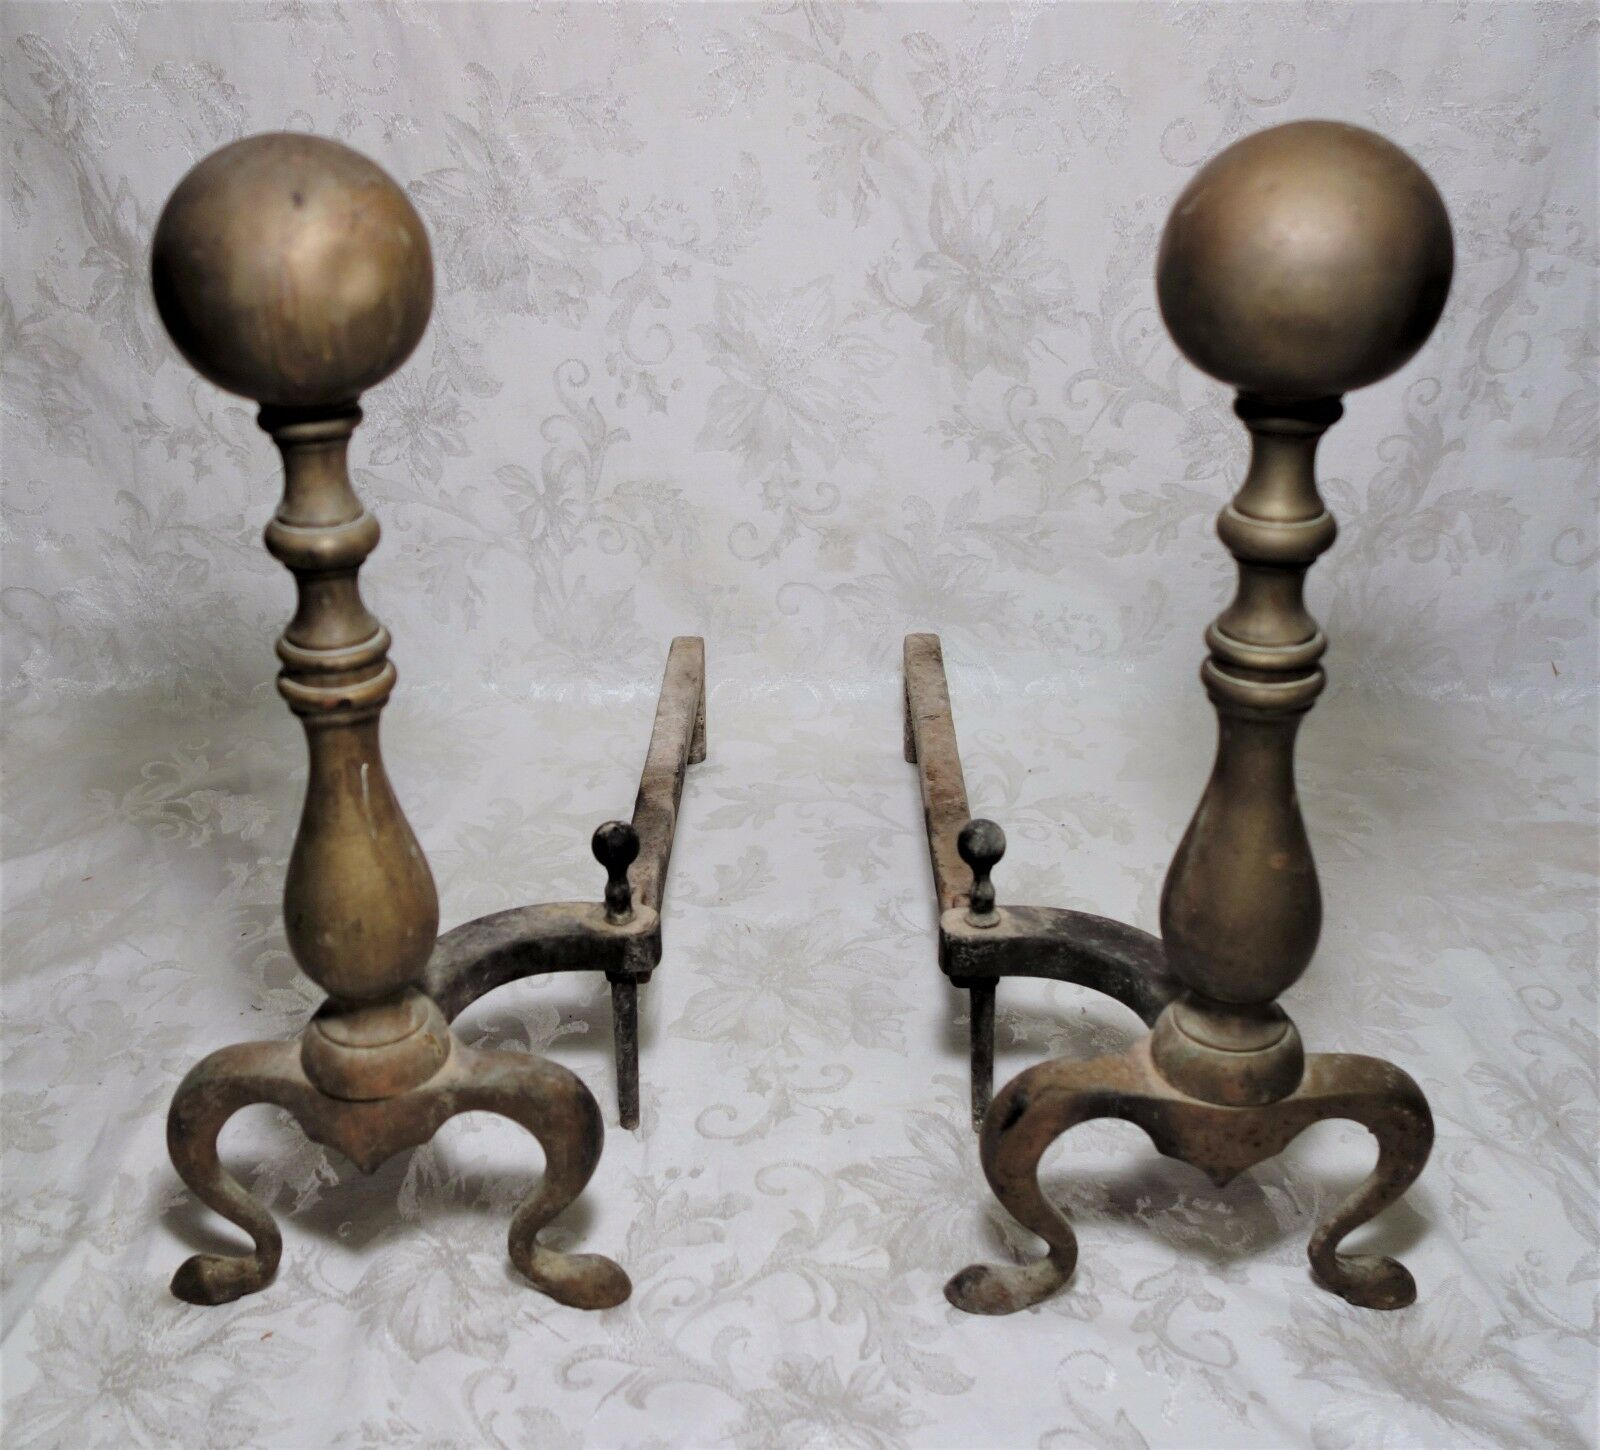 PAIR ANTIQUE Vintage Brass Cannon Ball Fireplace Tools